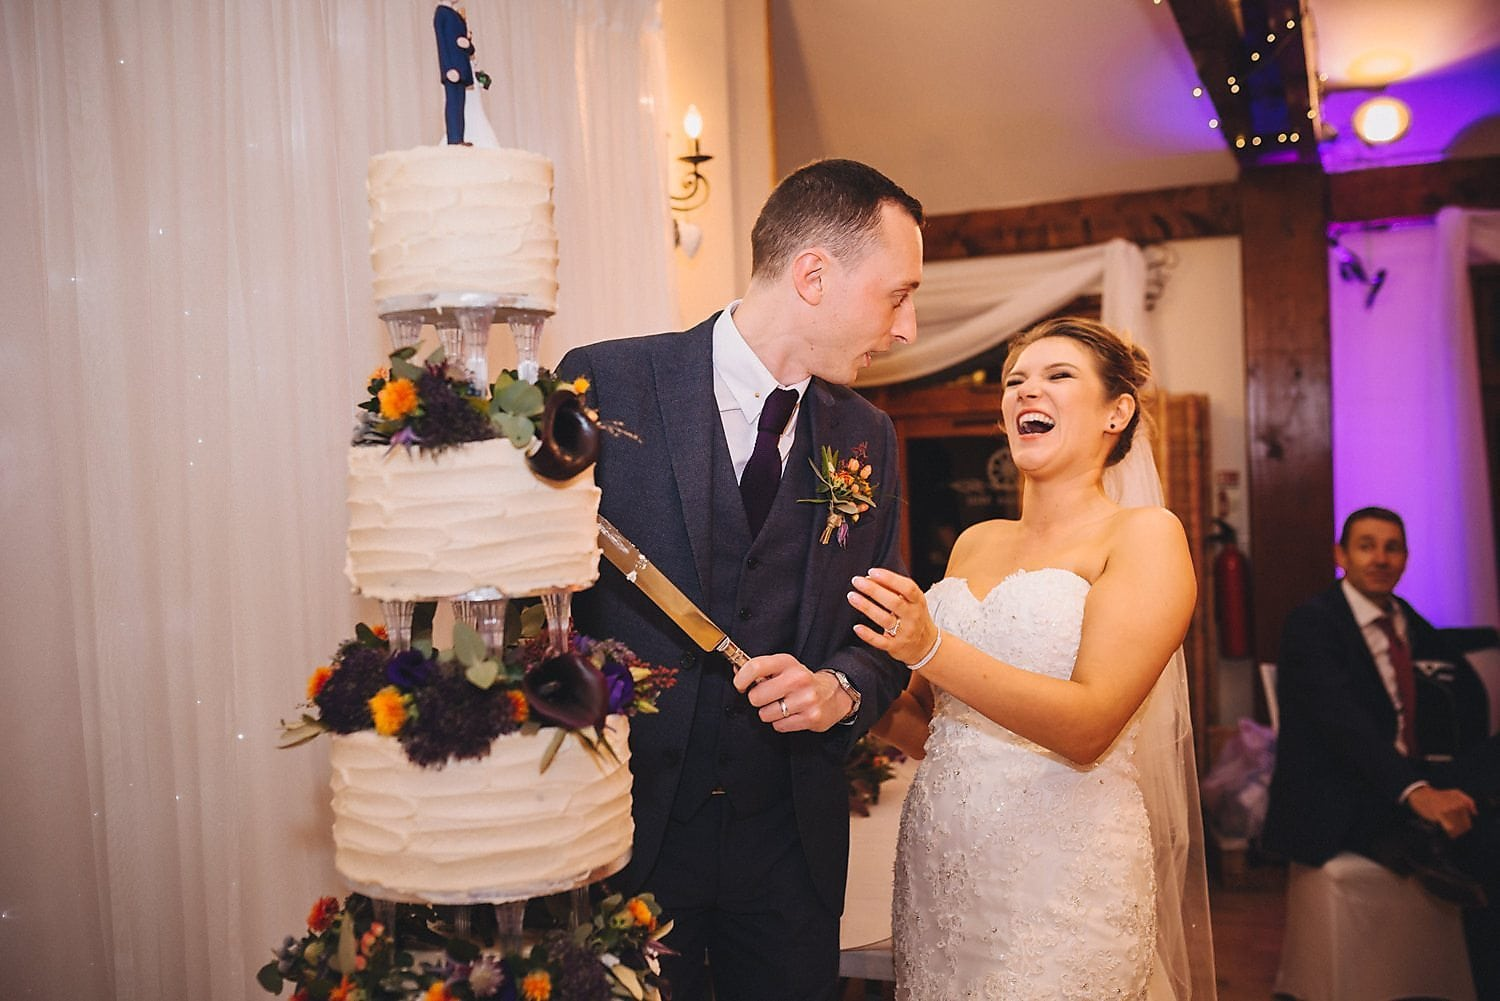 Bride and groom laughing as they cut their wedding cake